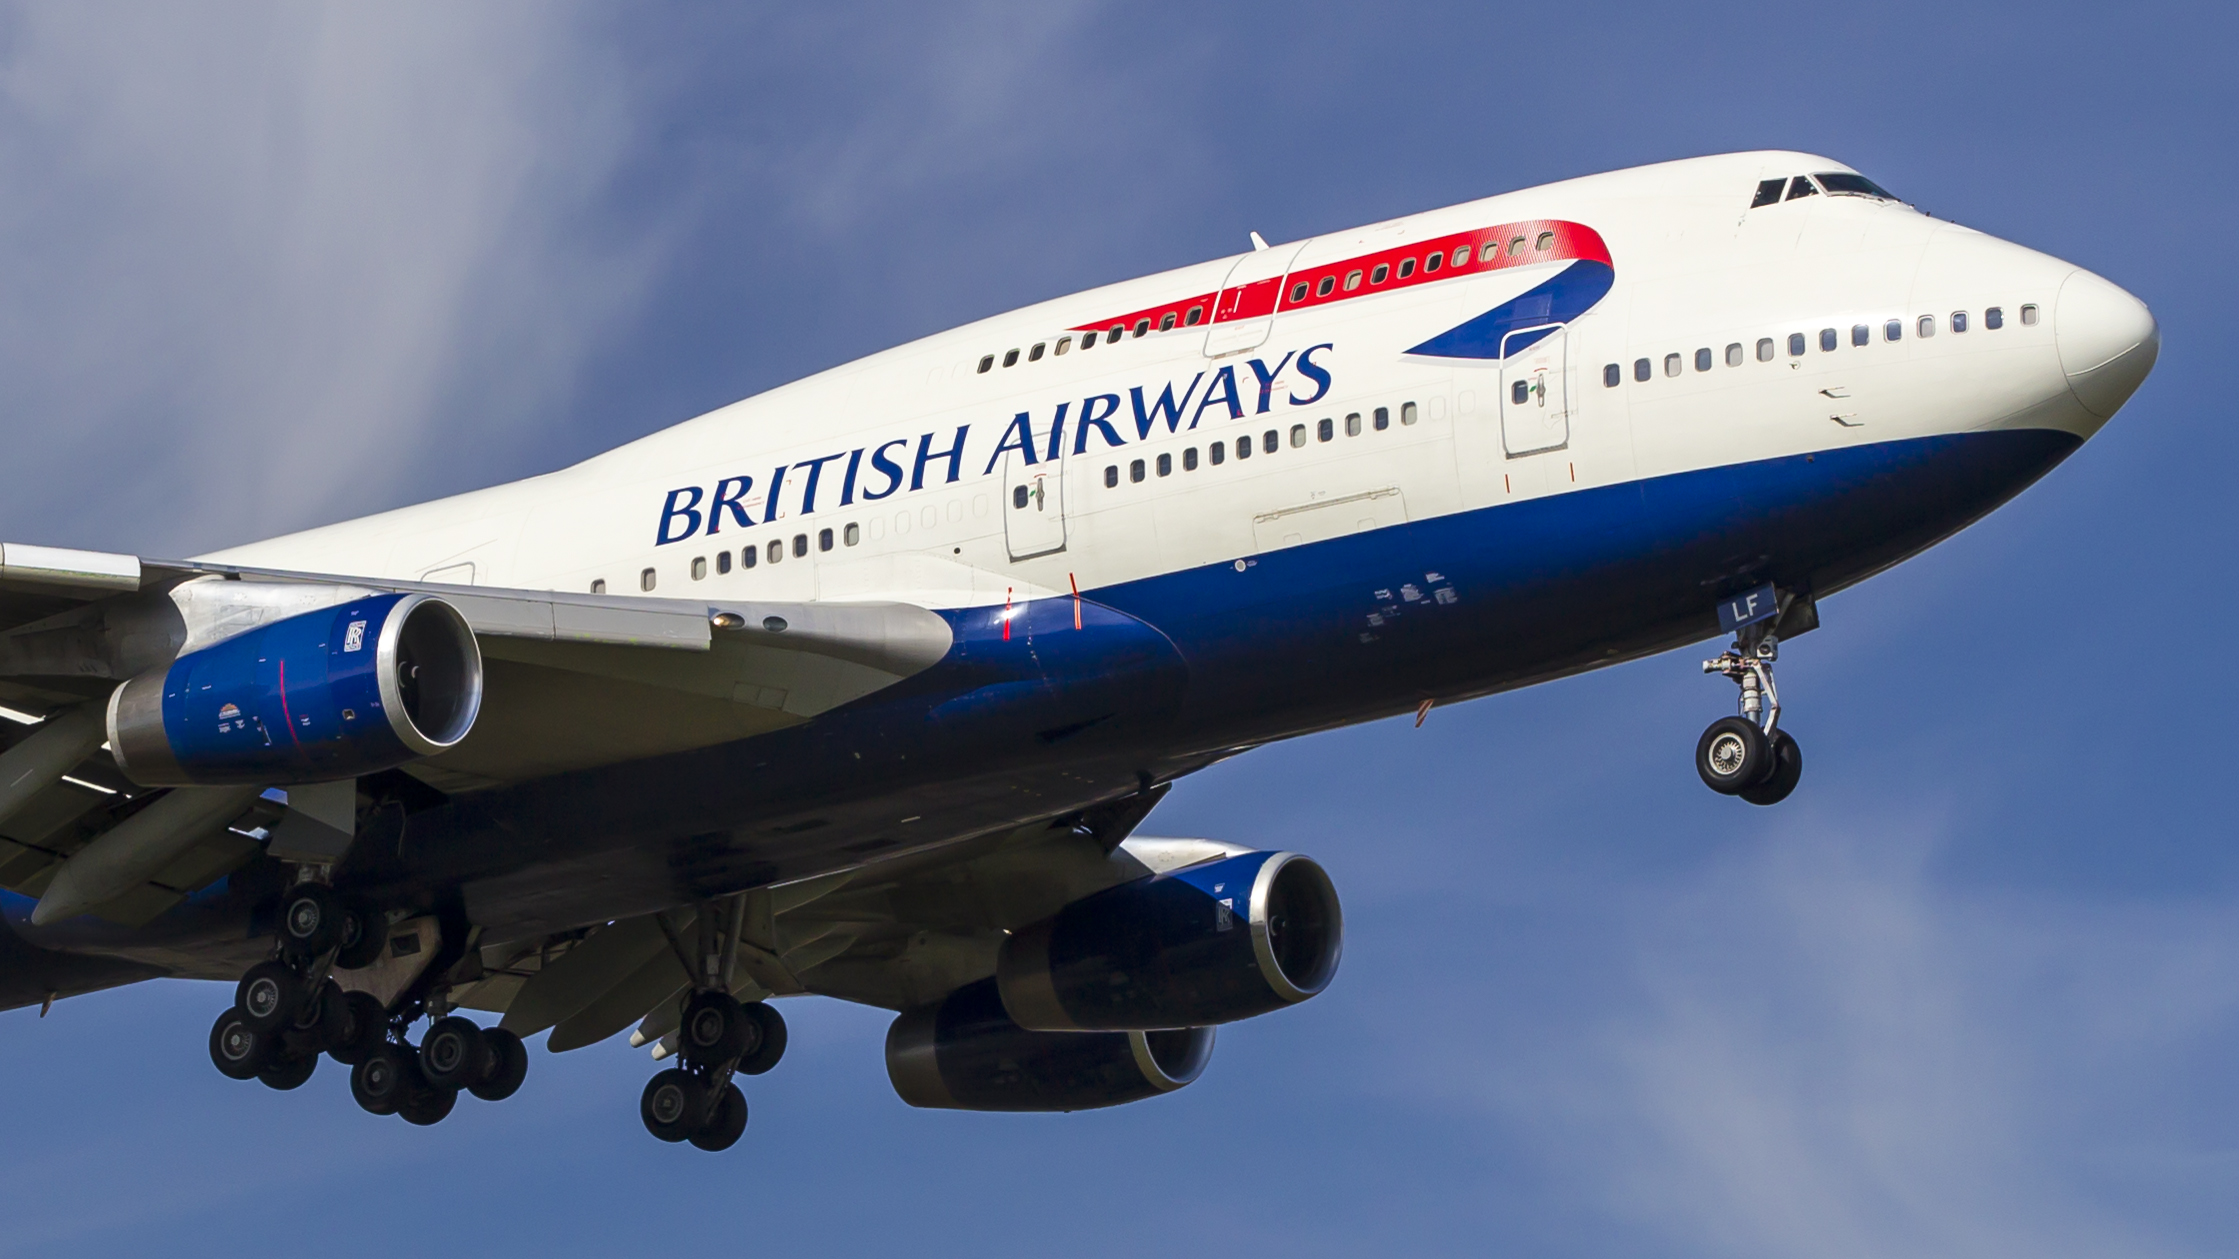 En Boeing 747-400 fra British Airways. Foto: © Thorbjørn Brunander Sund, Danish Aviation Photo